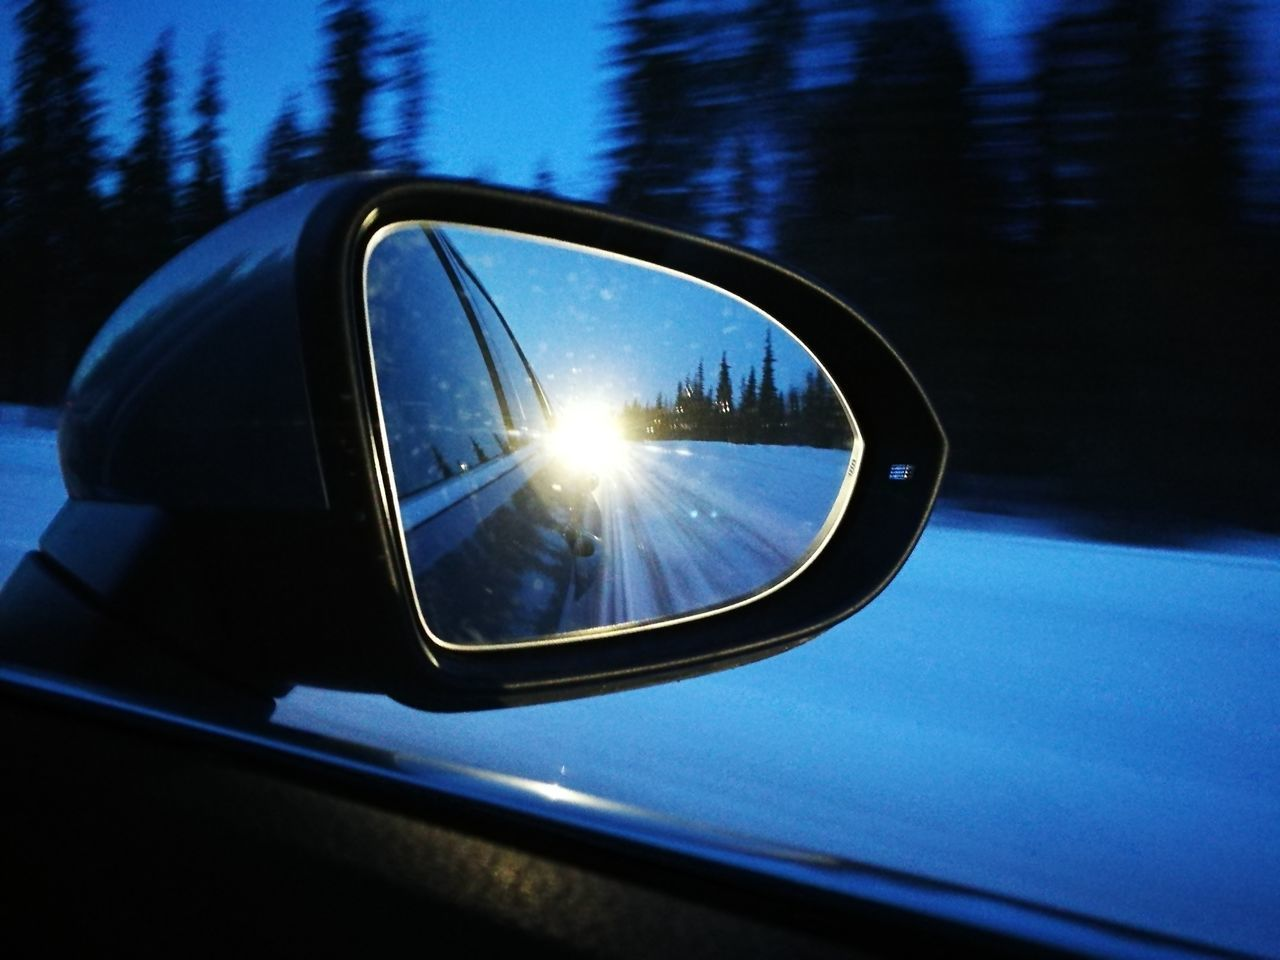 Backlight ( Car Reflection Transportation Mode Of Transport Car Interior Vehicle Interior Side-view Mirror Driving Speed Road Vehicle Mirror Close-up Moving Snow )